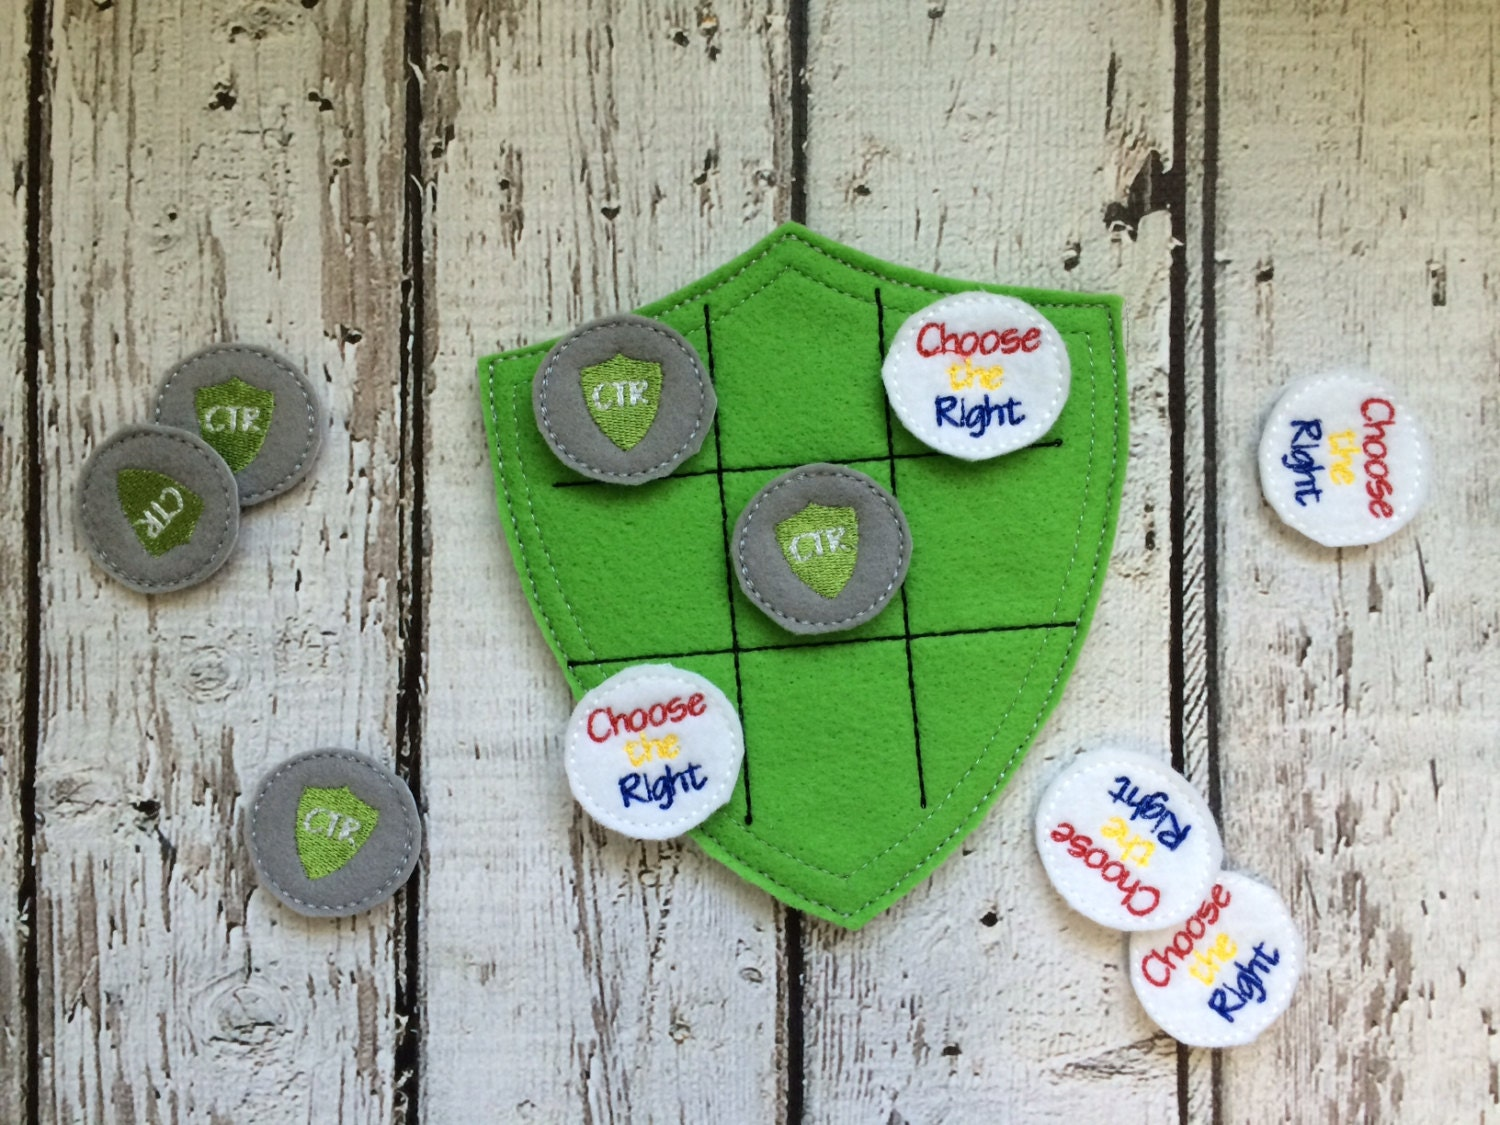 LDS Choose the Right Tic Tac Toe Kid Game Christmas Gift   Etsy